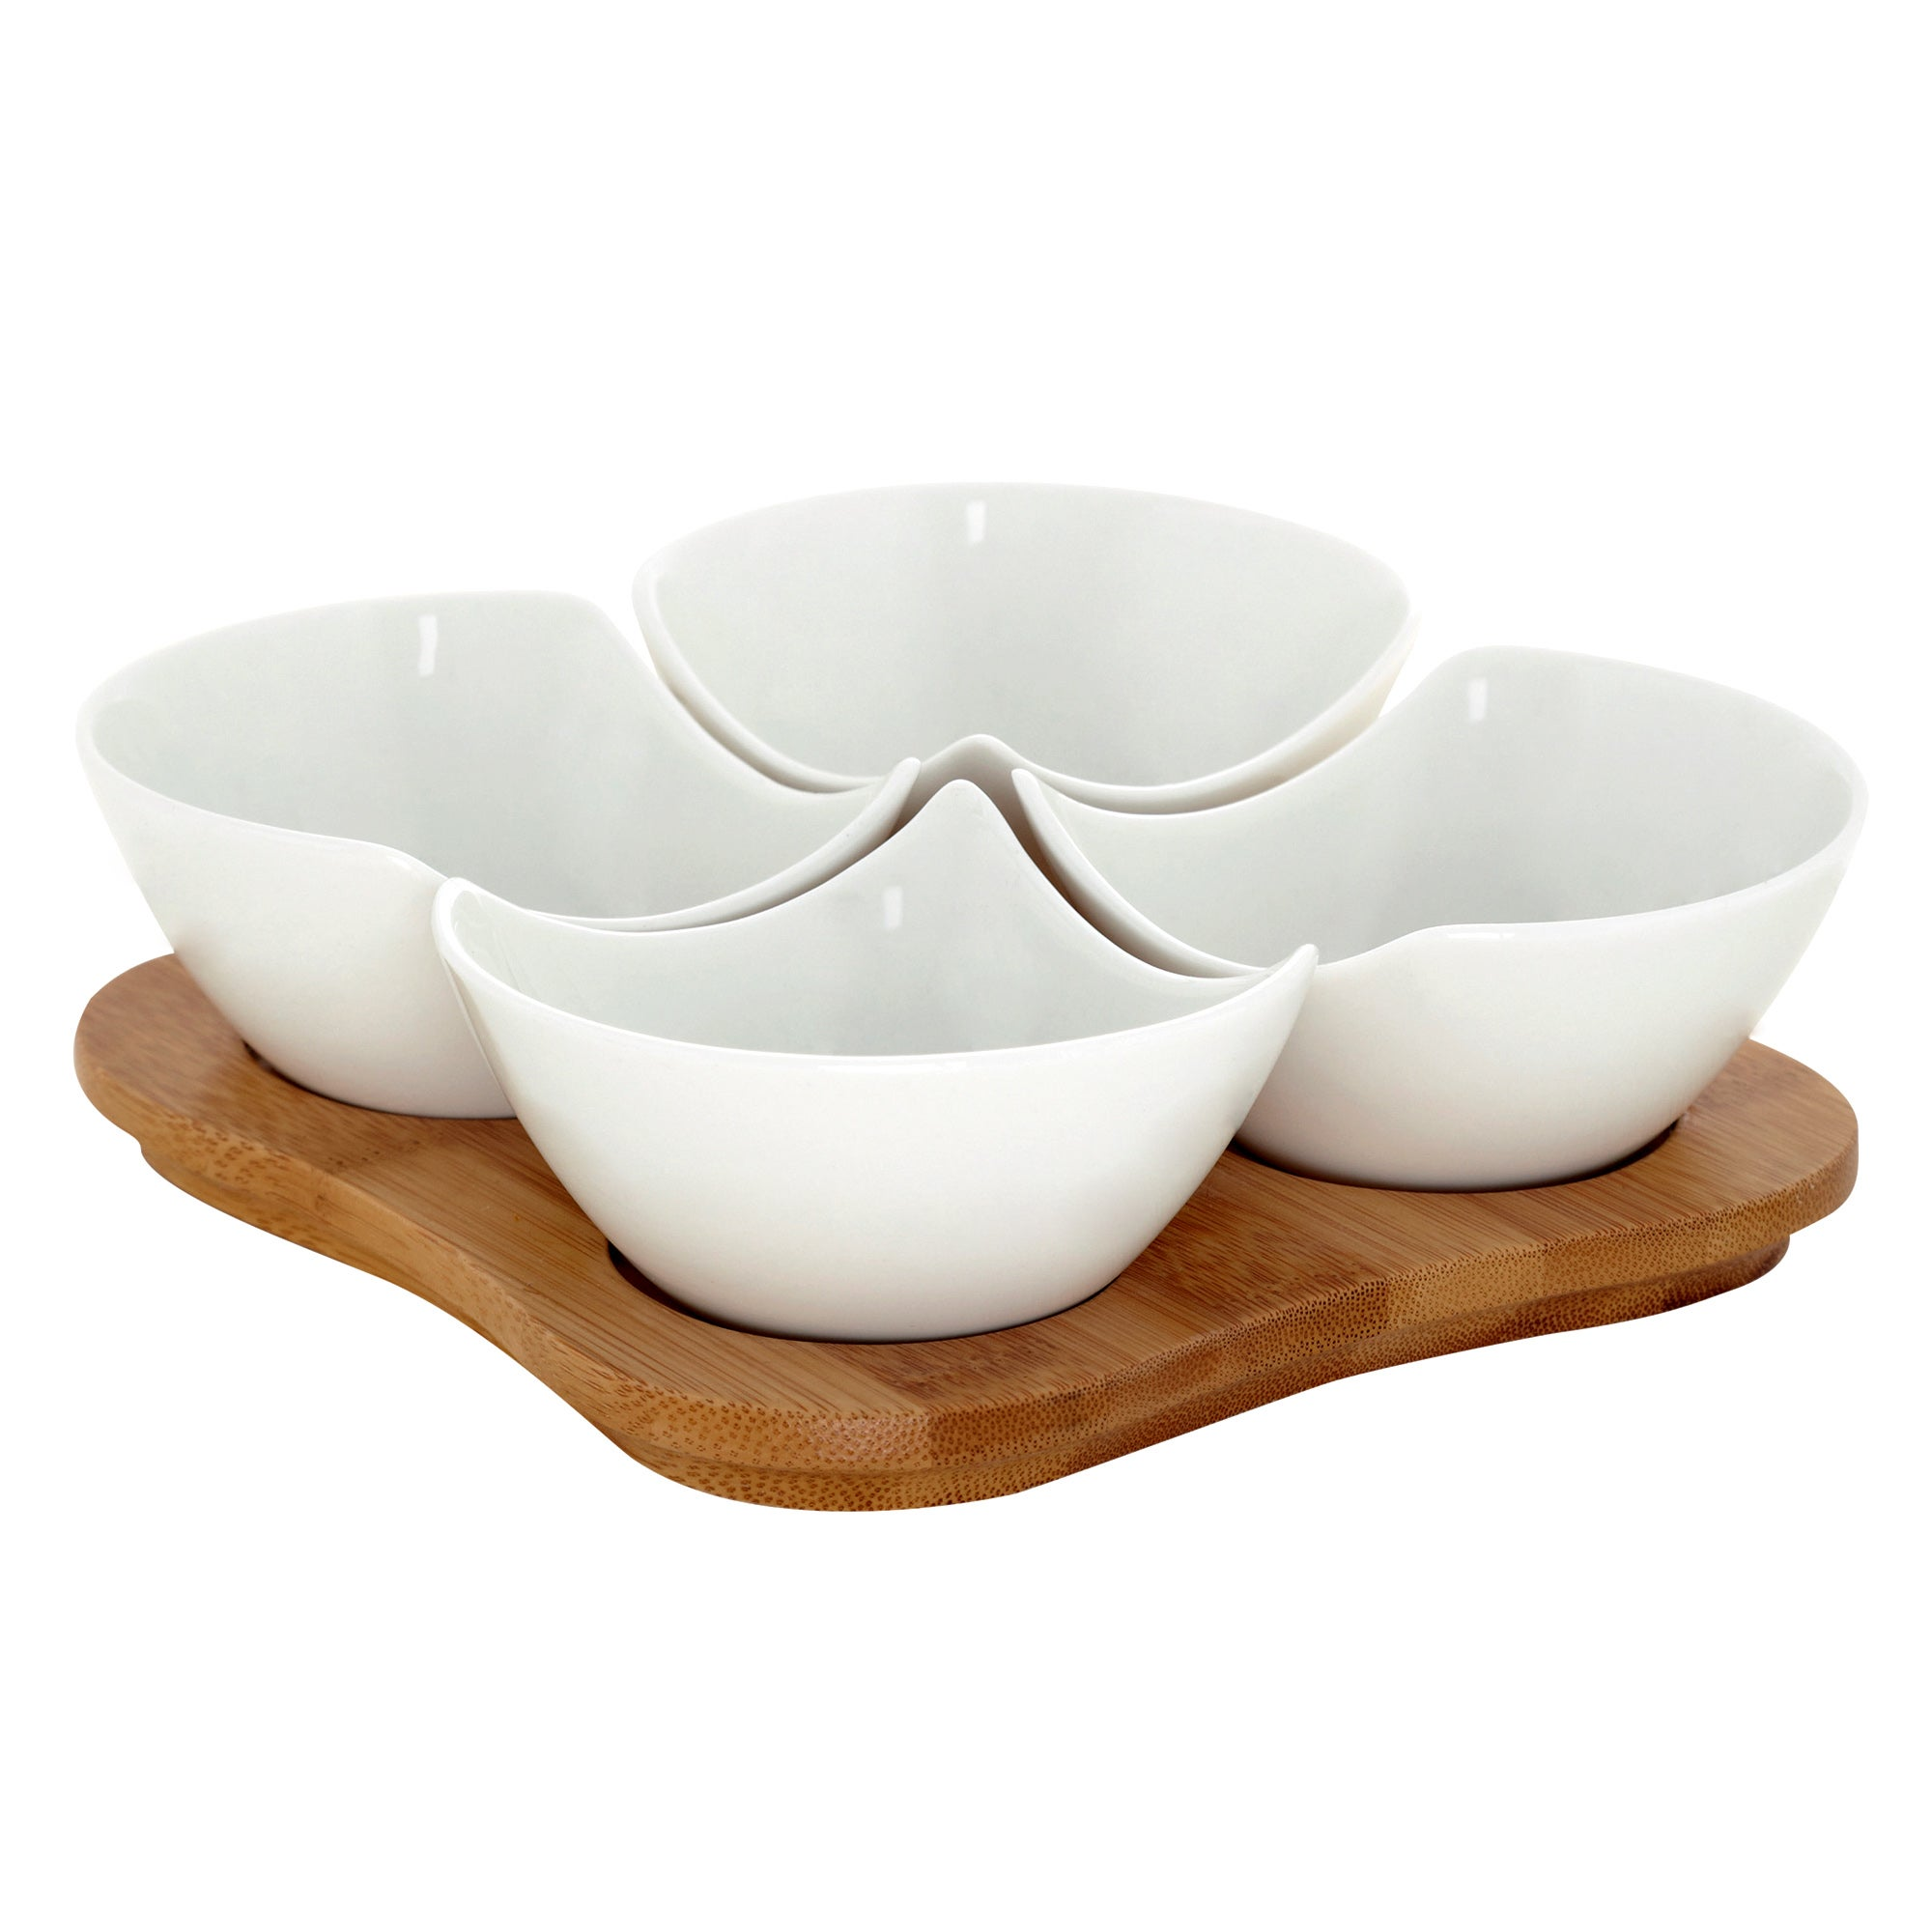 Bamboo Tray With 4 Rounded Dishes